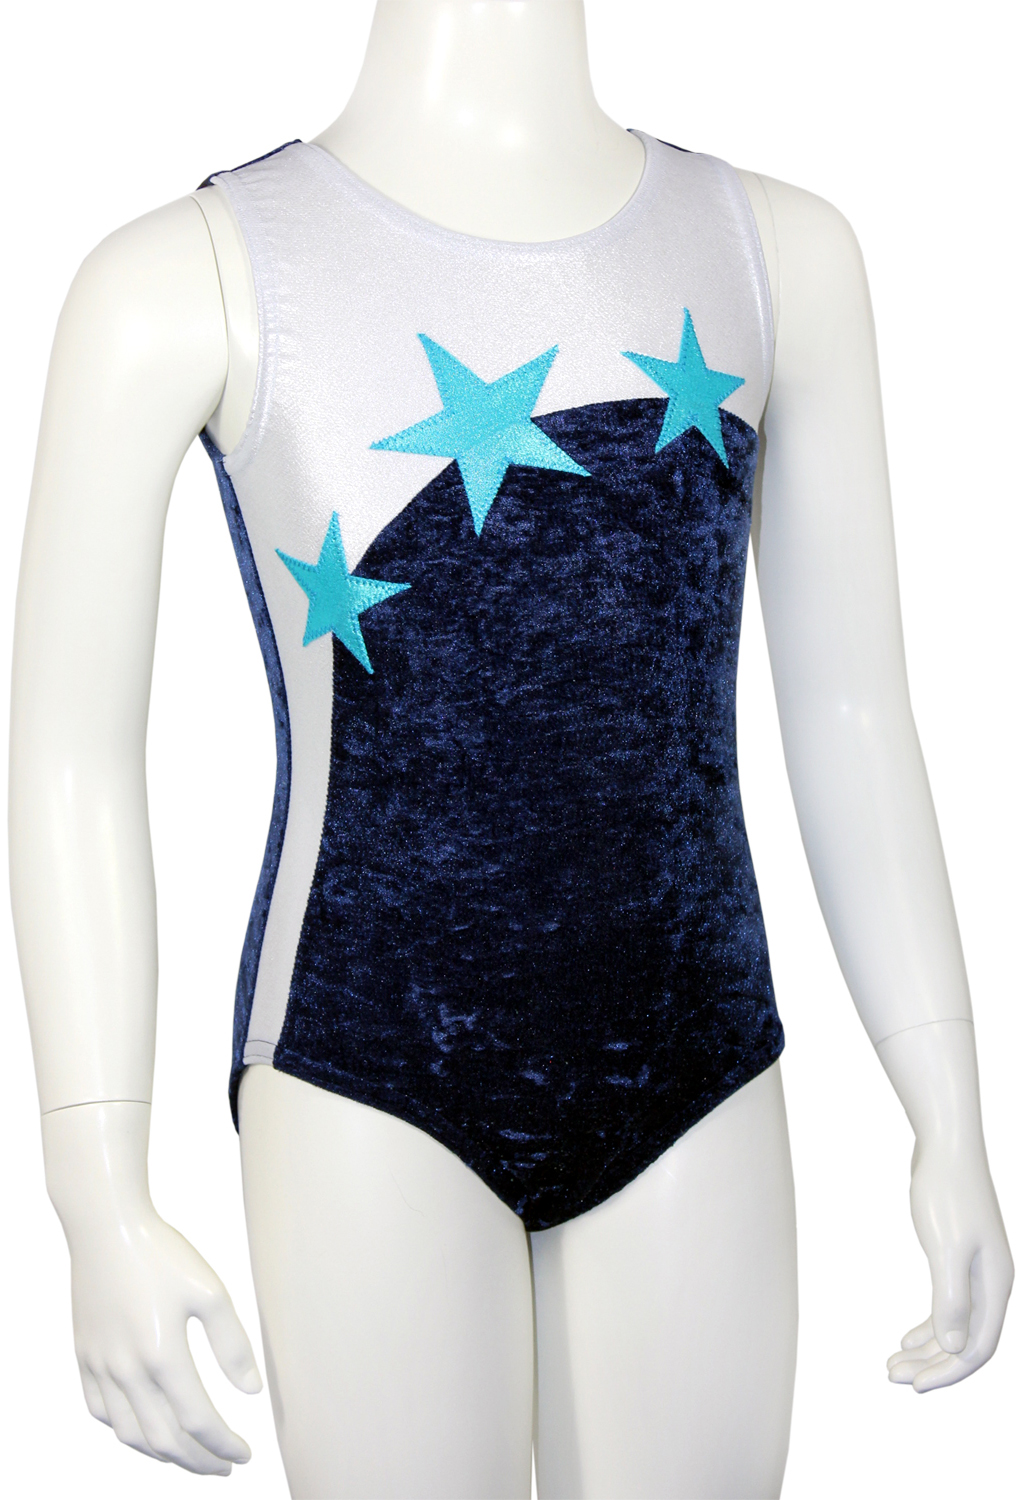 Kurzarm Turnanzug Starlight aus Crash Samt & Glitzerlycra